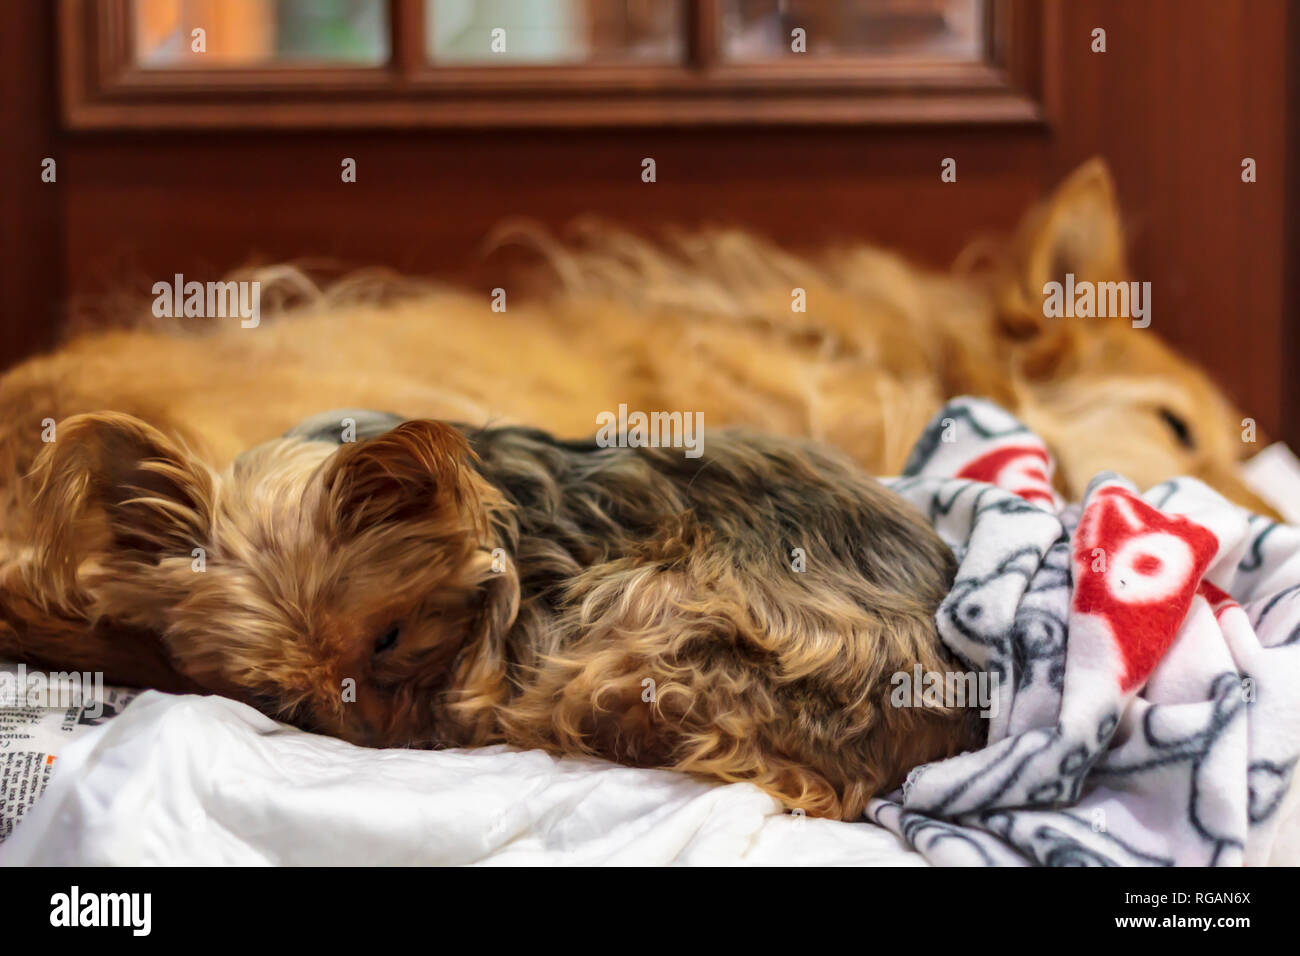 Dogs slepping in the same bed with blanket - Stock Image